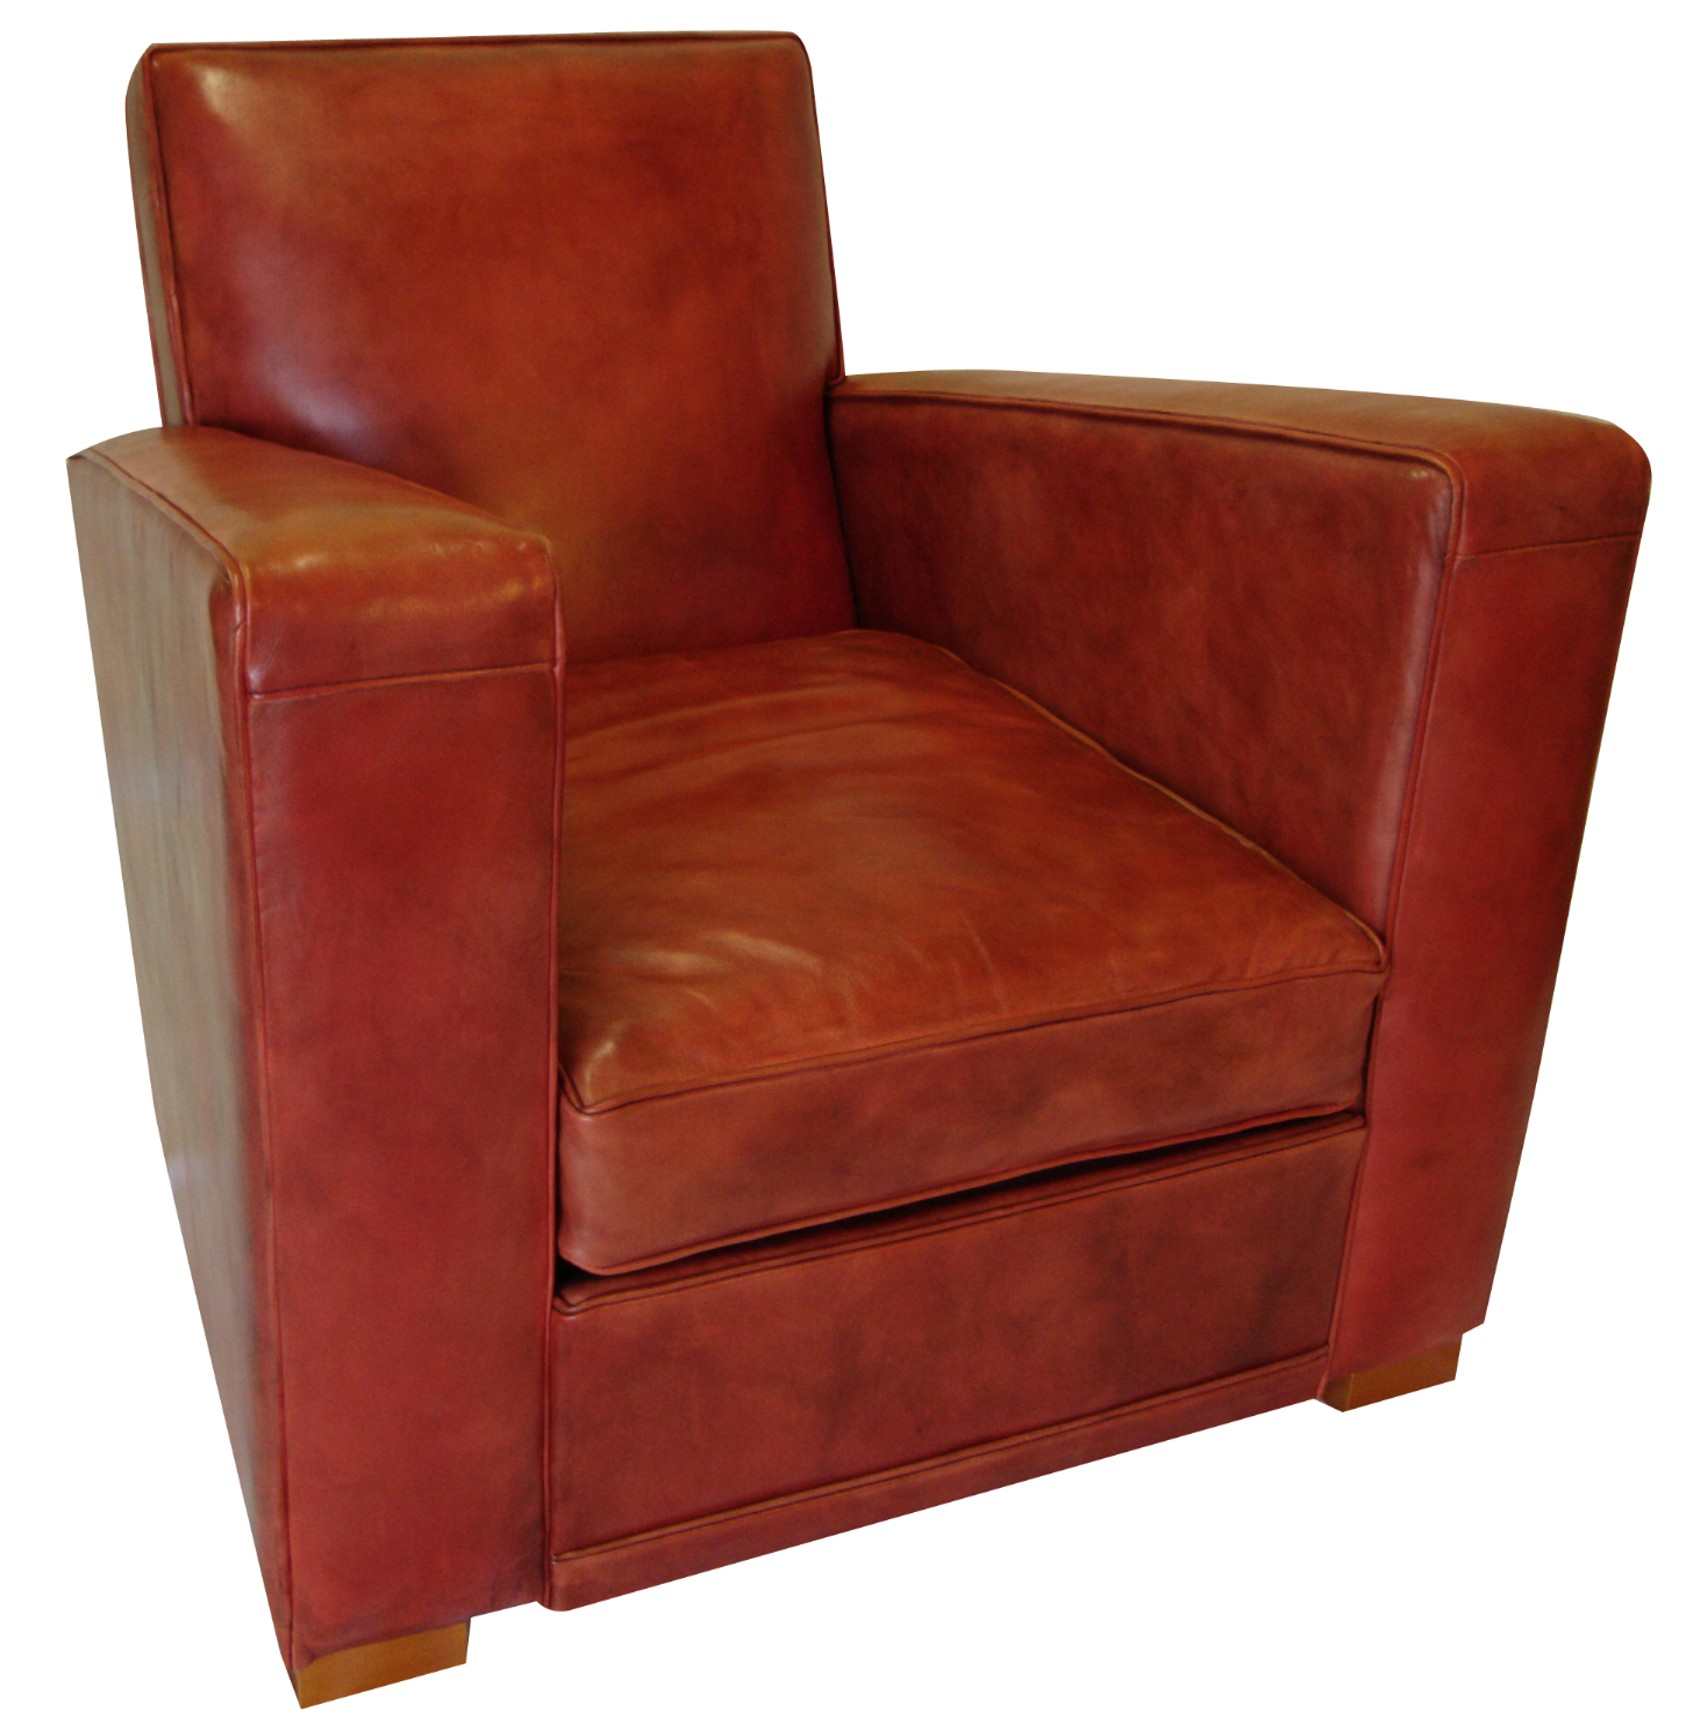 File Art deco club chair